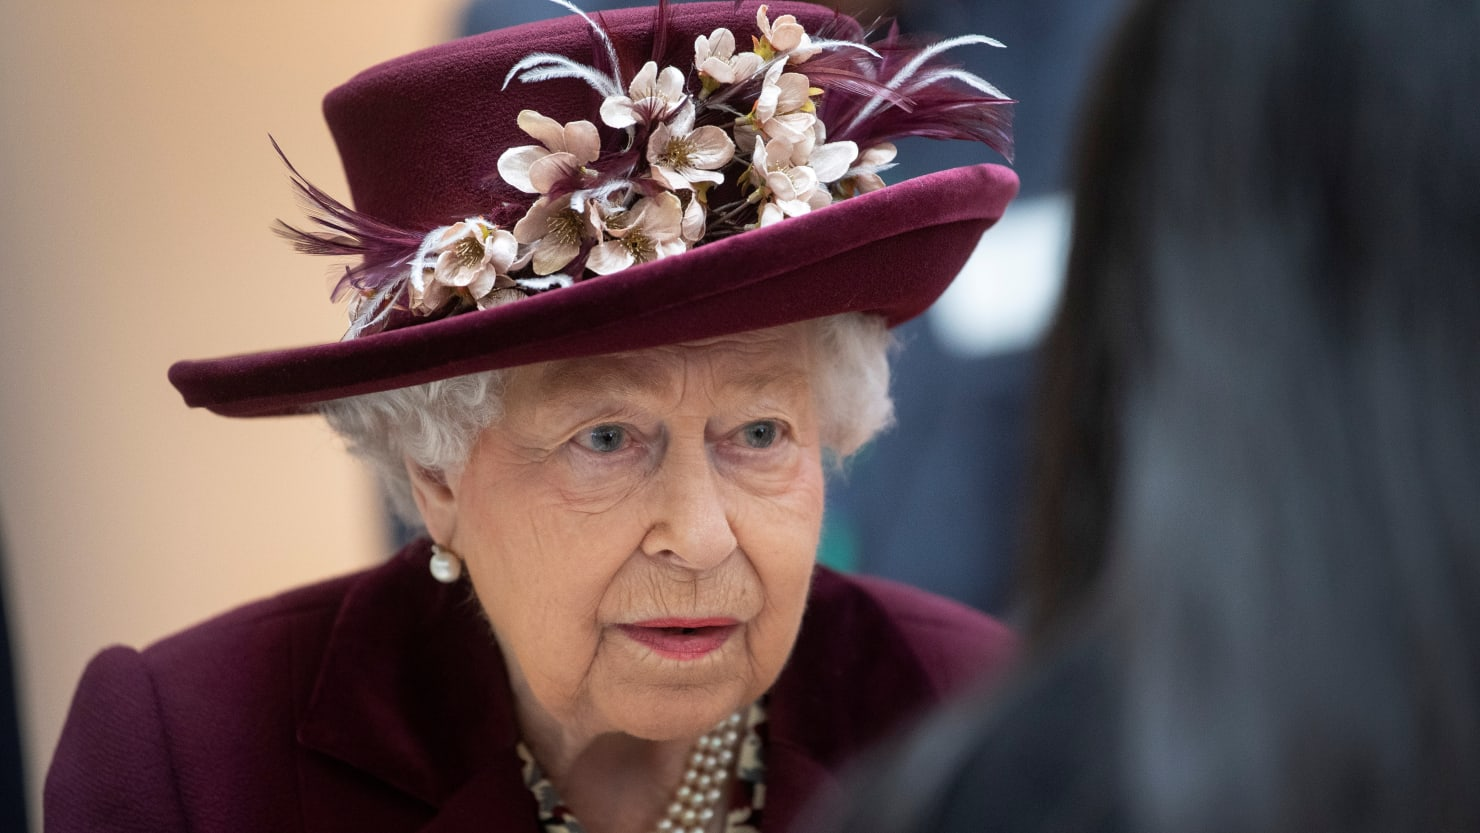 Queen: I Want British to 'Take Pride' in Response to 'Increasingly Challenging' Time of Coronavirus